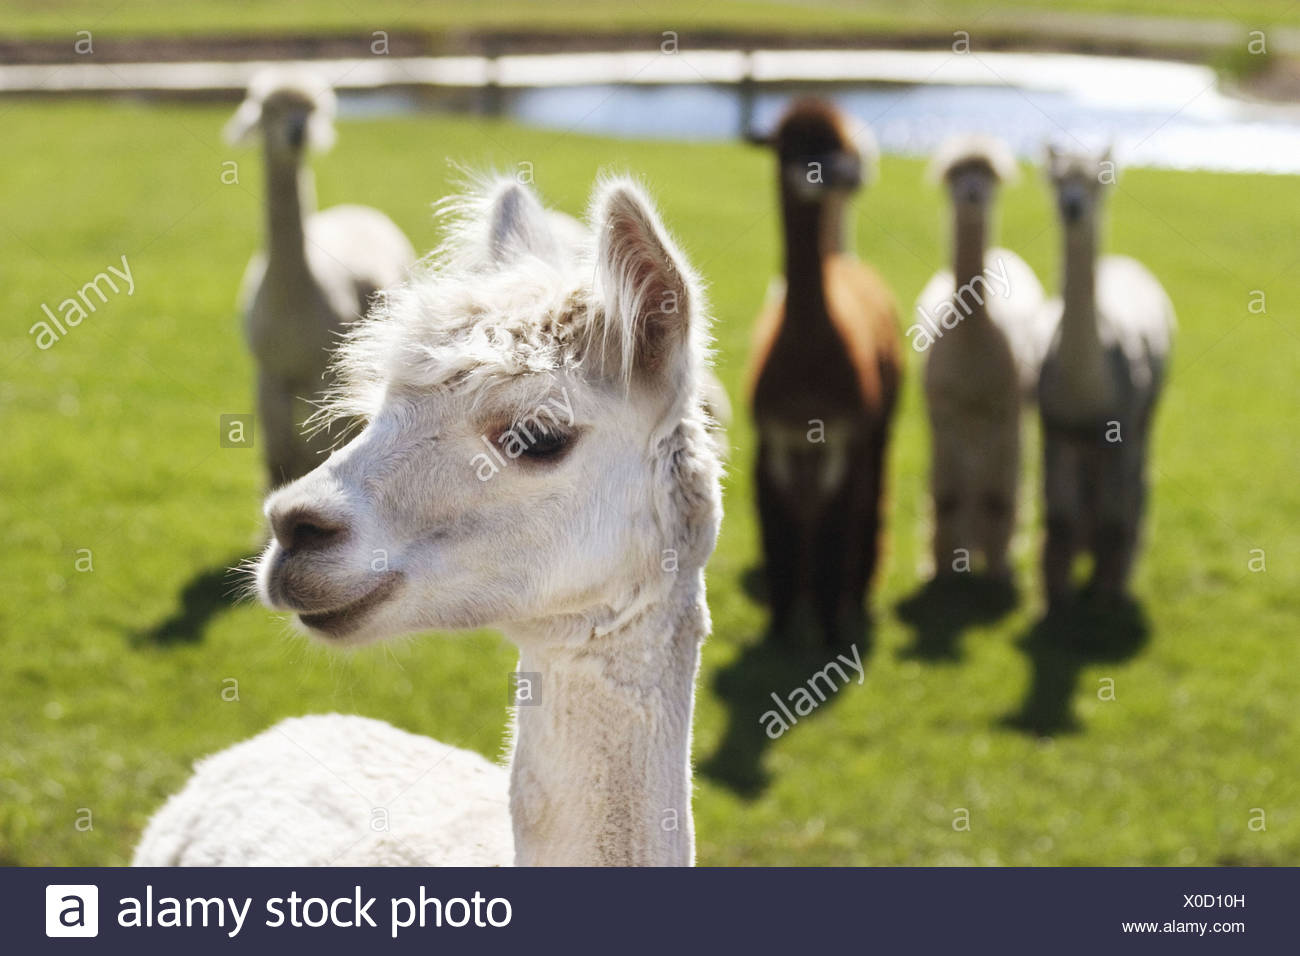 smiling alpaca lama pacos posing as if it were the leader of the